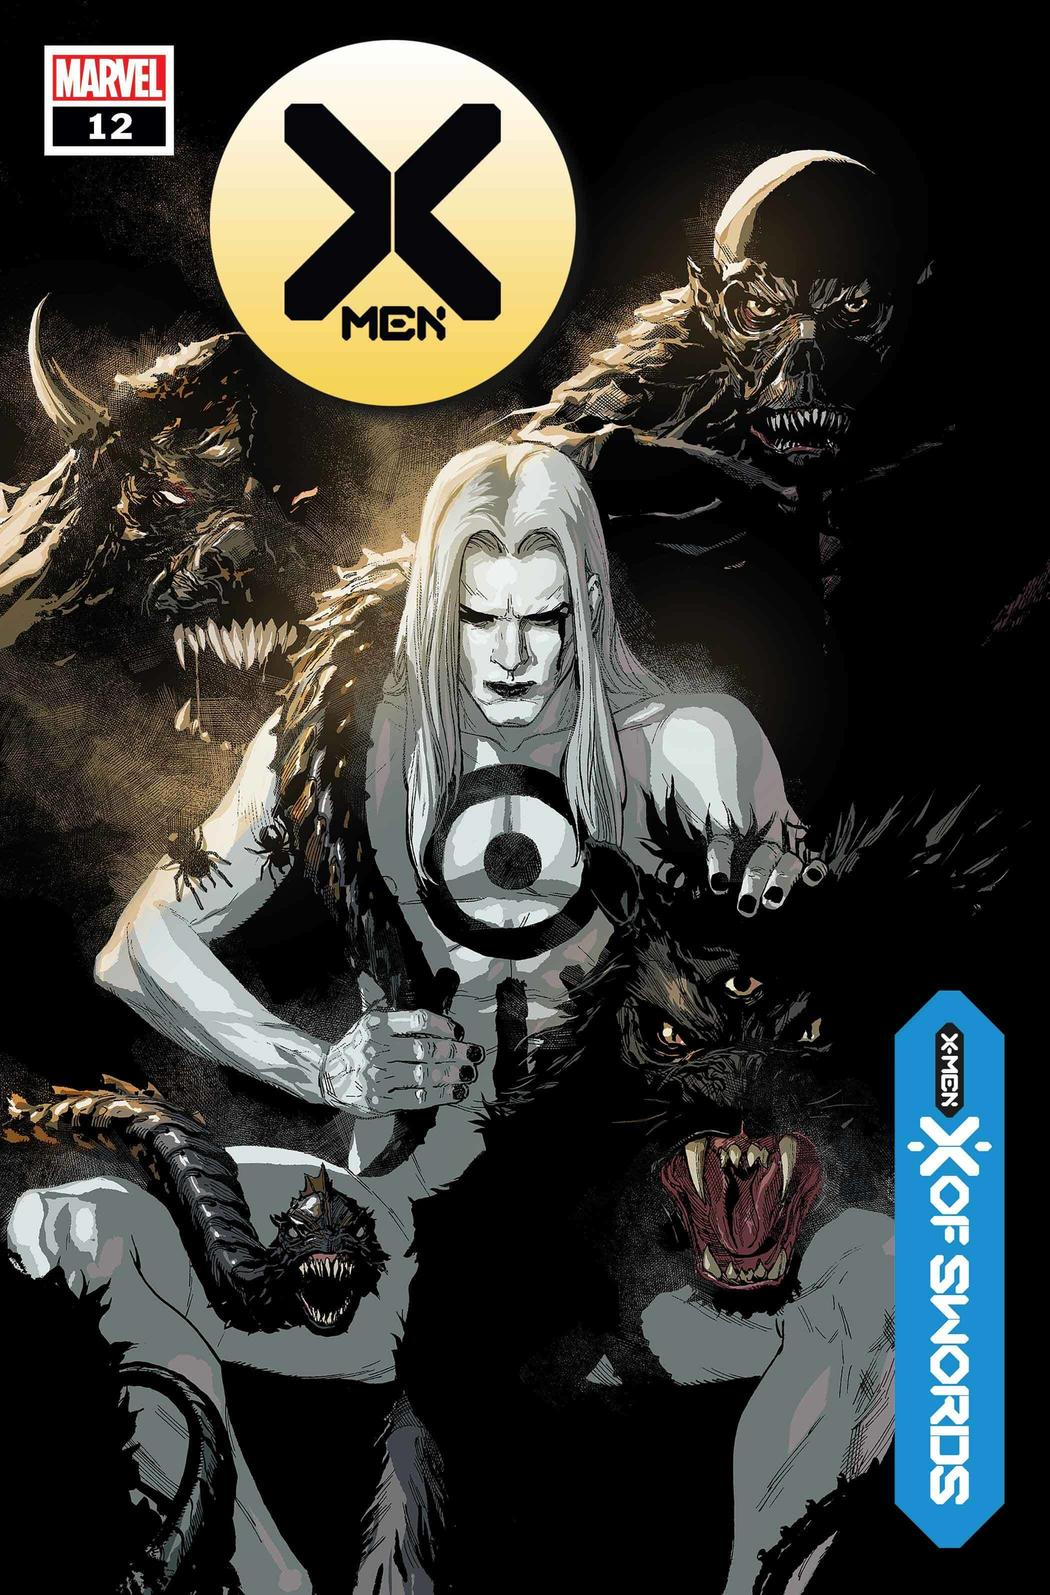 X-MEN #12 WRITTEN BY JONATHAN HICKMAN, ART AND COVER BY LEINIL FRANCIS YU